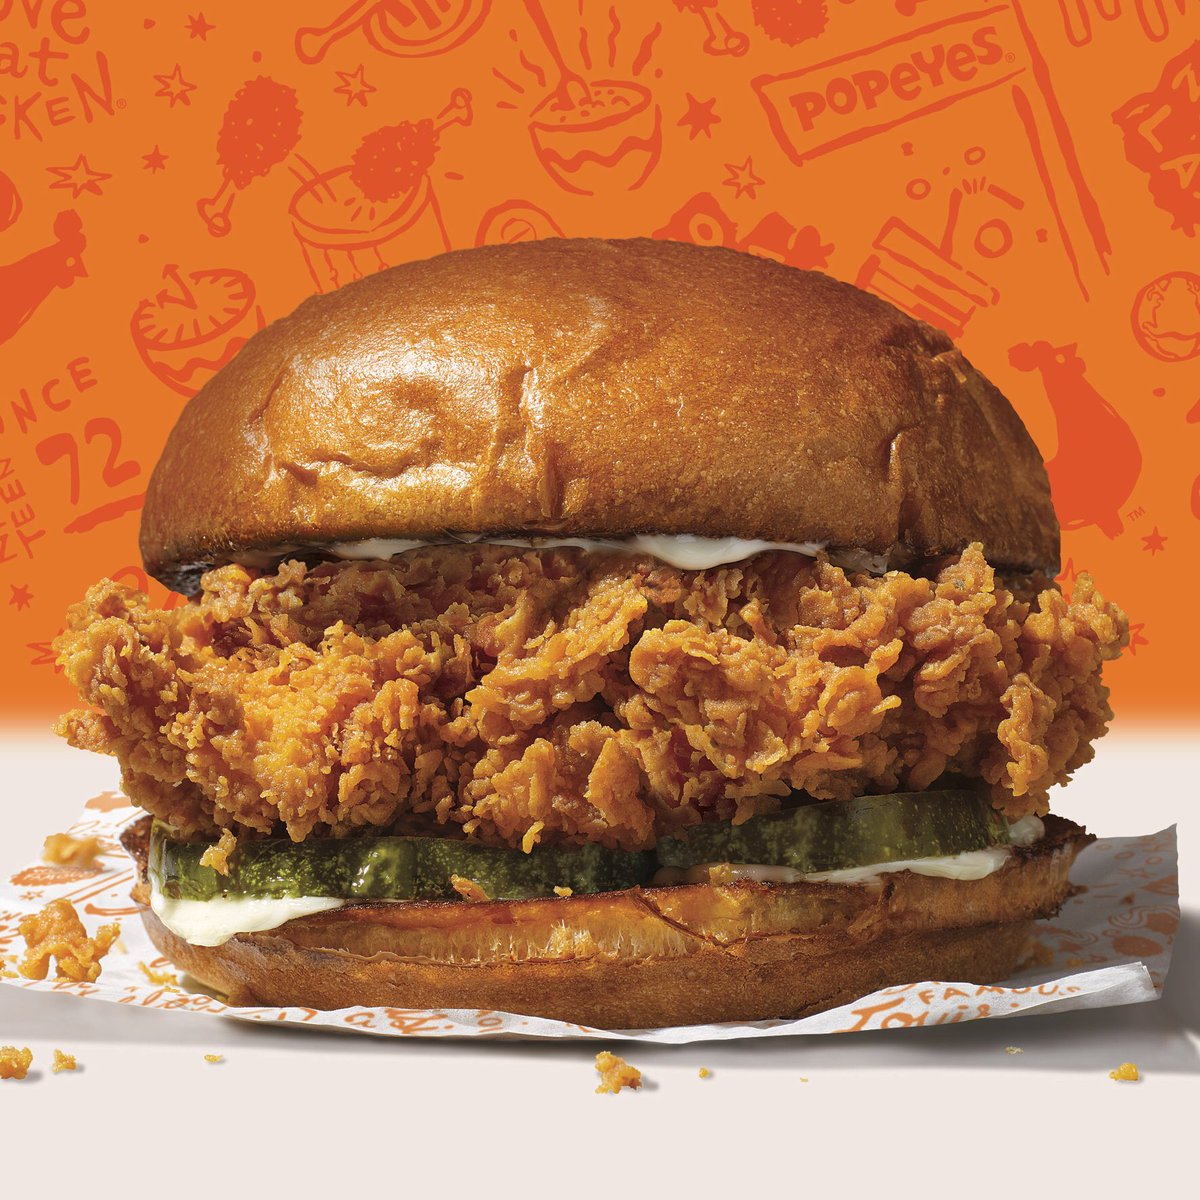 Chicken. Brioche. Pickles. New. Sandwich. Popeyes. Nationwide. So. Good. Forgot. How. Speak. In. Complete. Sandwiches. I mean, sentences.